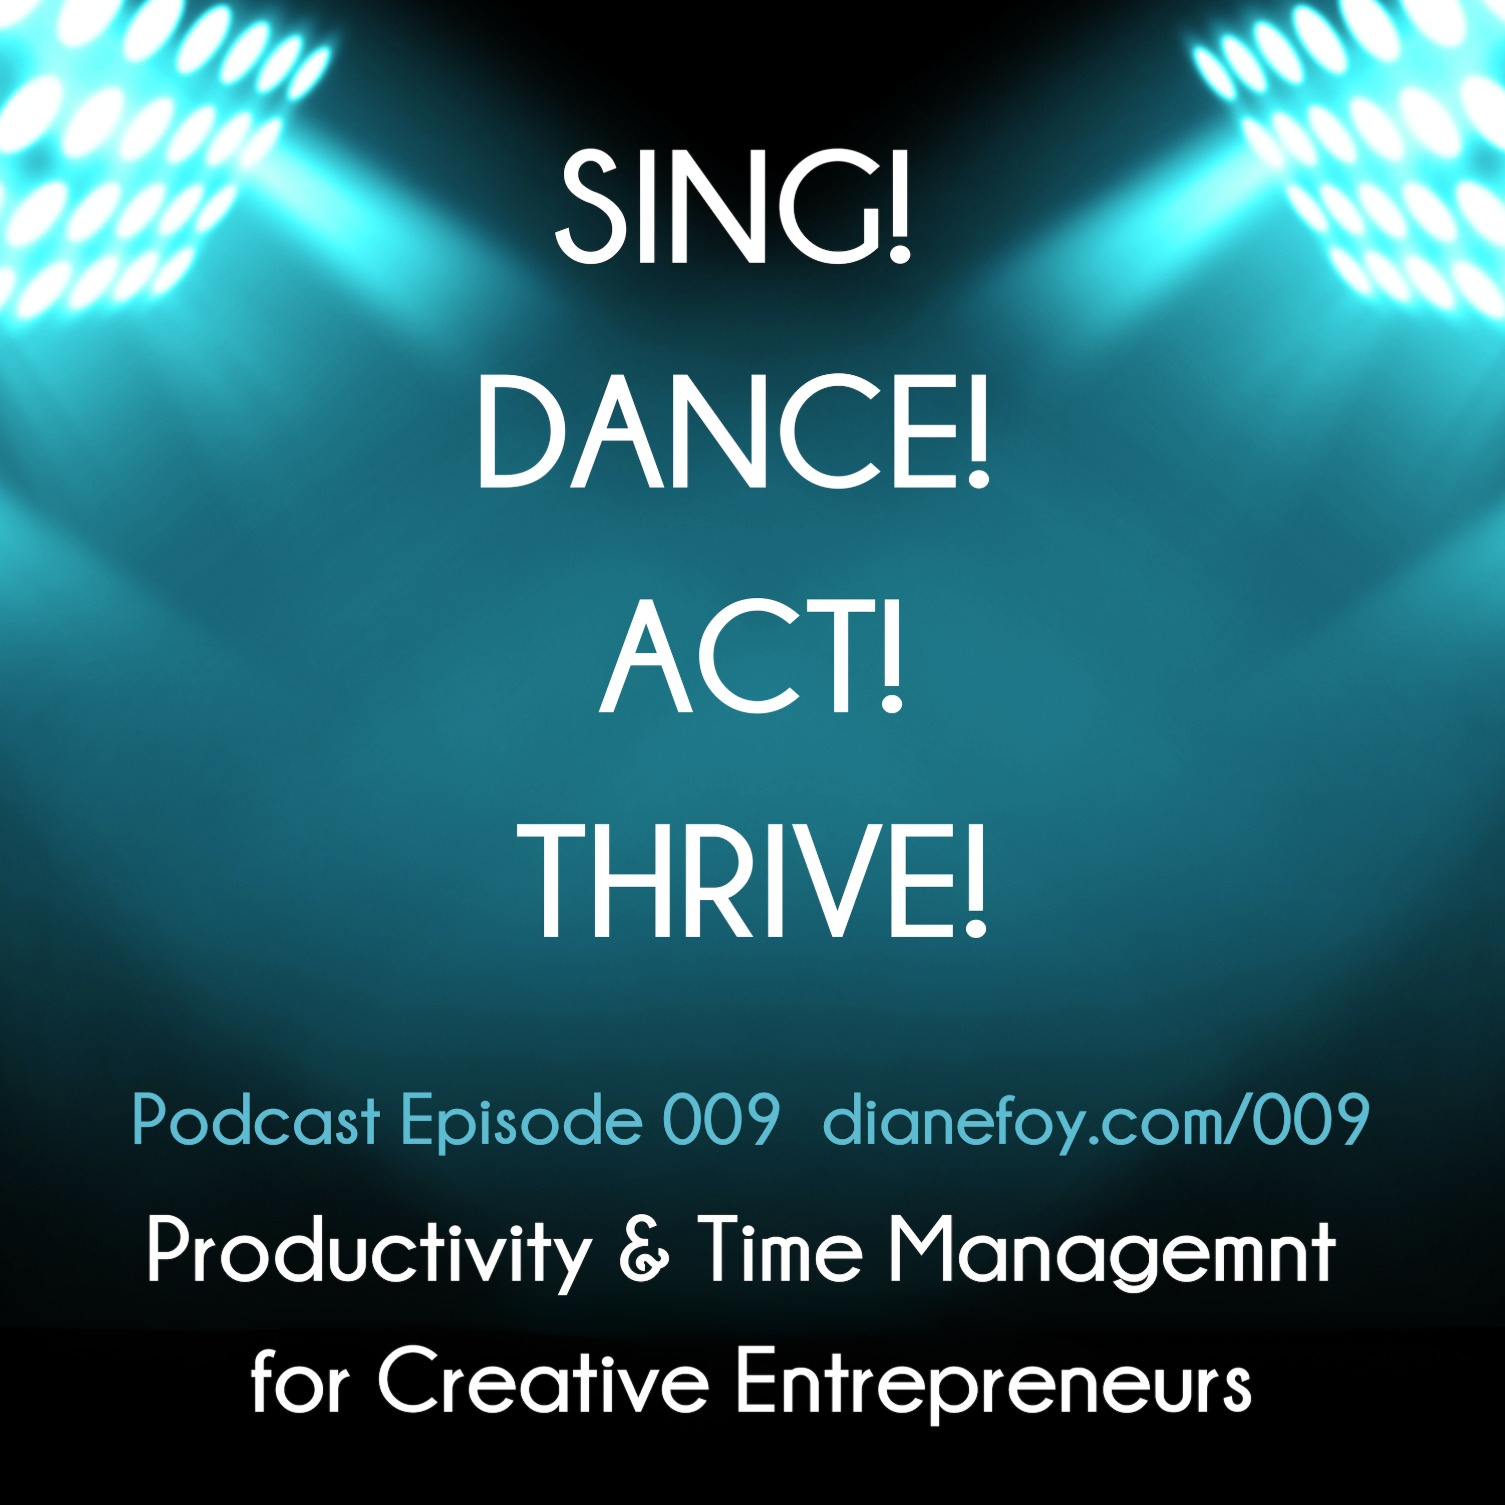 Productivity & Time Management for Creative Entrepreneurs